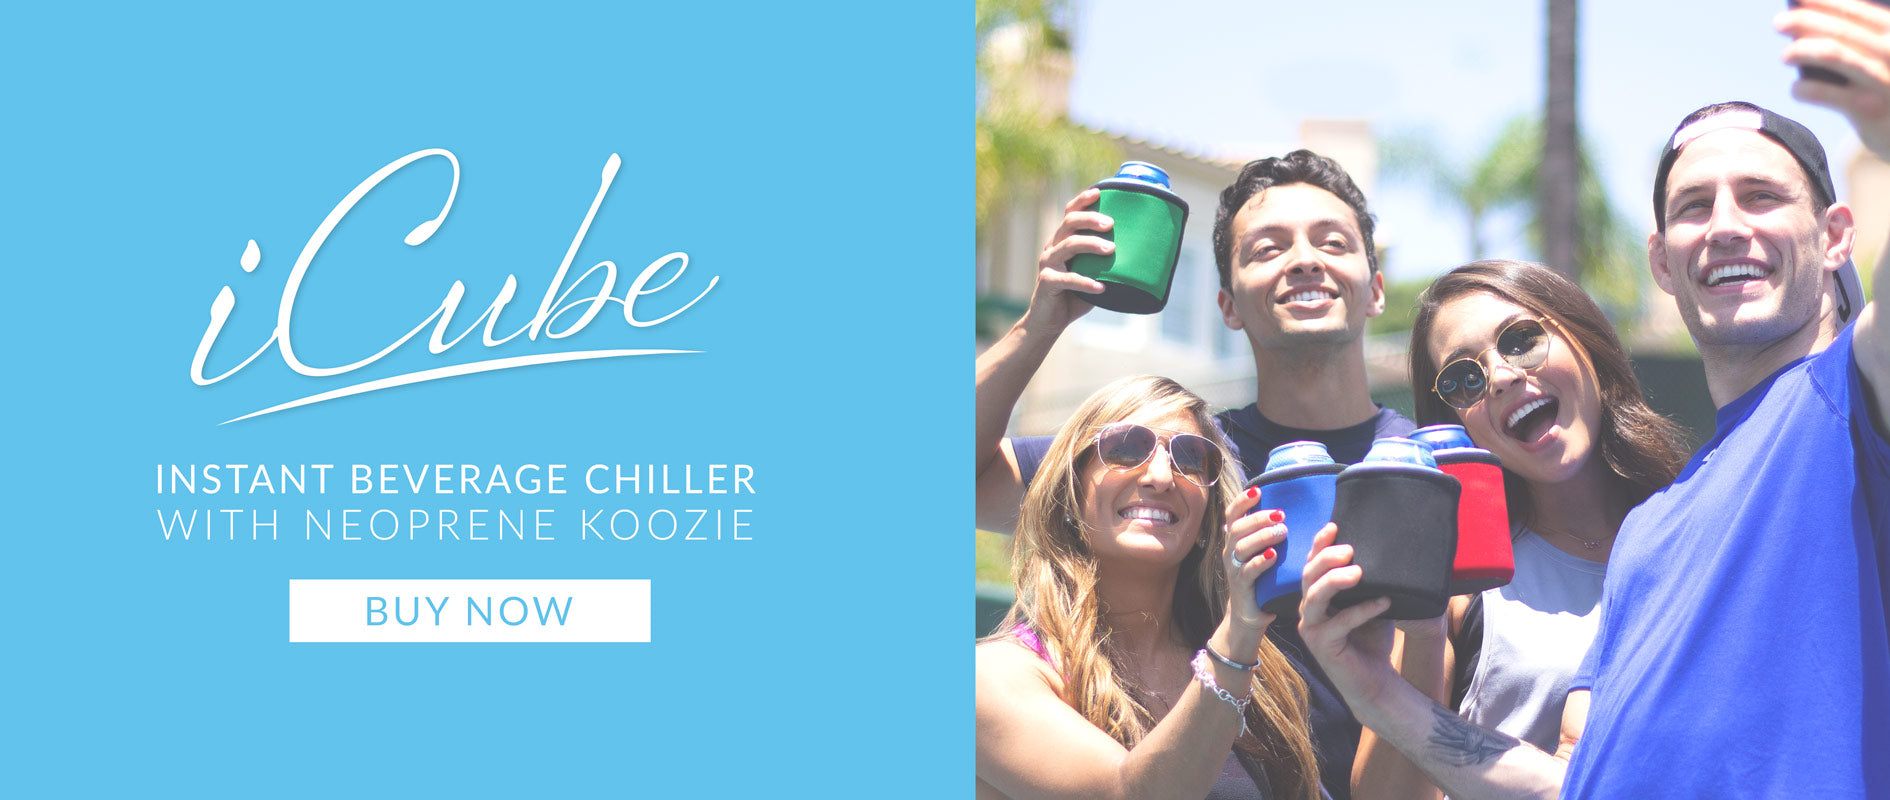 iCube Instant Beverage Chiller with Neoprene Koozie Sleeve by ChillnJoy